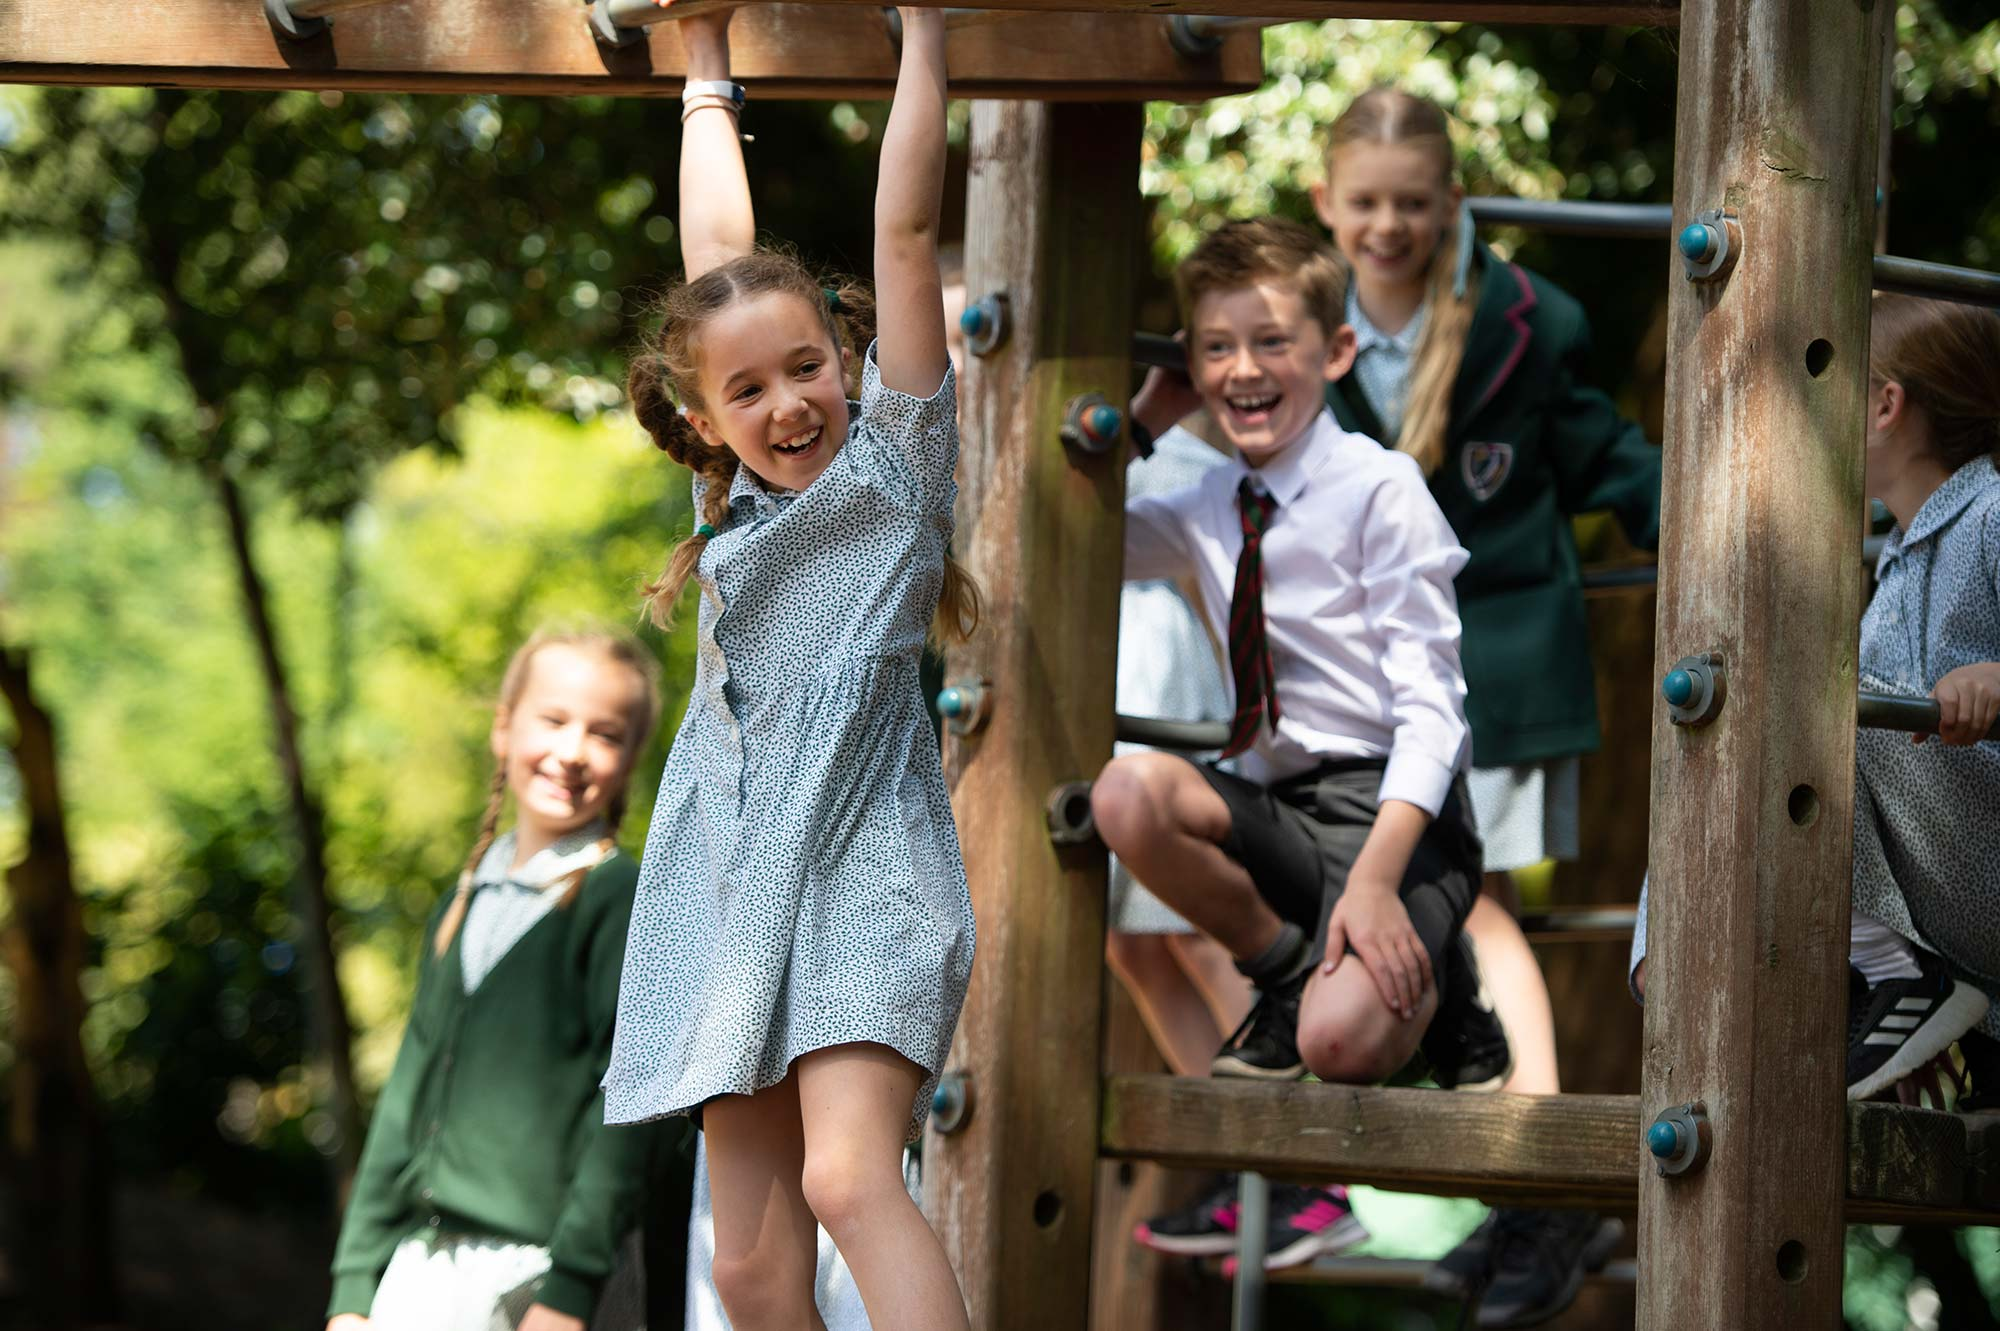 Yarrells-School-and-Nursery-Climbing-Frame